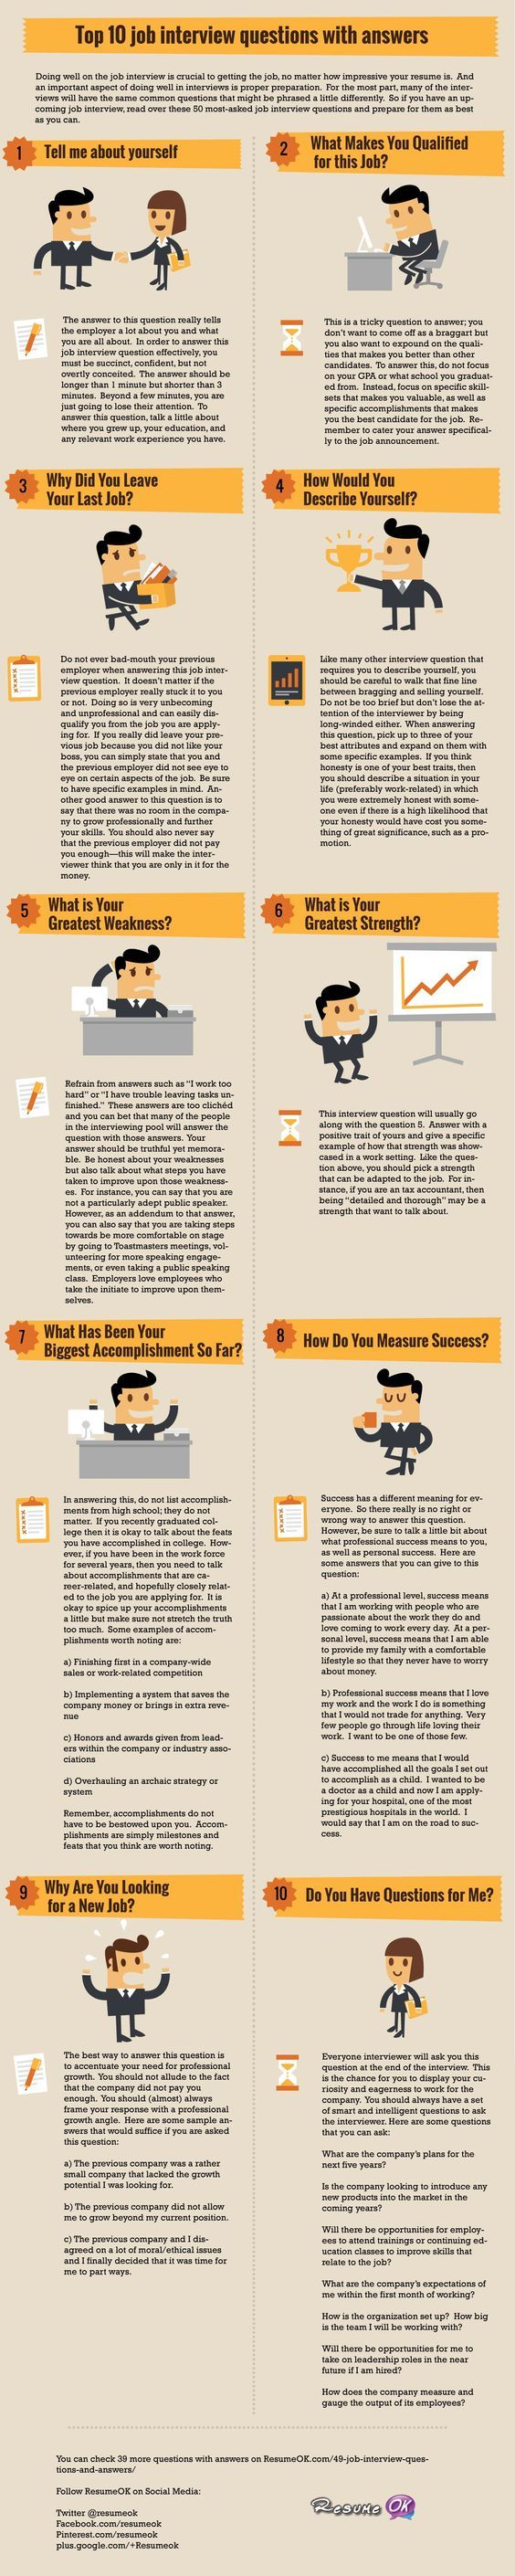 CATEGORIES Career advice Cover letter Get a job Guest Authors Job interview tips Others Productivity at work Resume writing tips Write a resume 50 Job Interview Questions and Answers [Infographic] Felix - April 16, 2013 - Job interview tips TWEET LIKE IT GOOGLE + LINKEDIN PINTEREST Doing well on the job interview is crucial to getting the job, no matter how impressive your resume is. And an important aspect of doing well in interviews is proper preparation. For the most part, many of